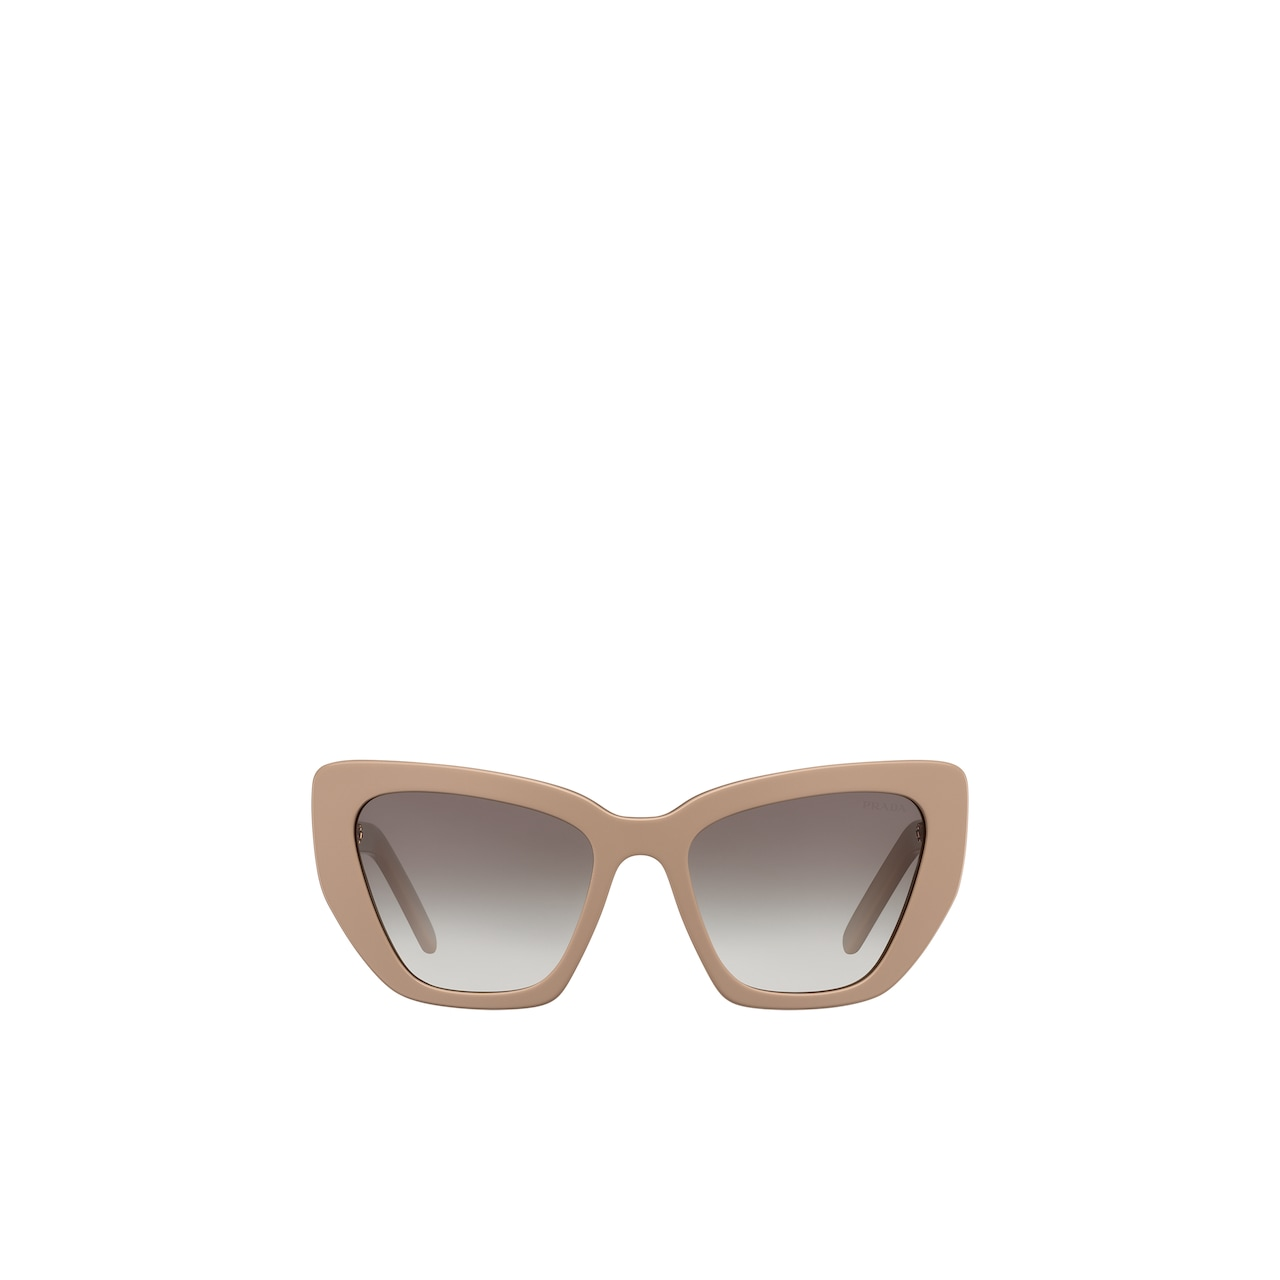 Prada Postcard sunglasses